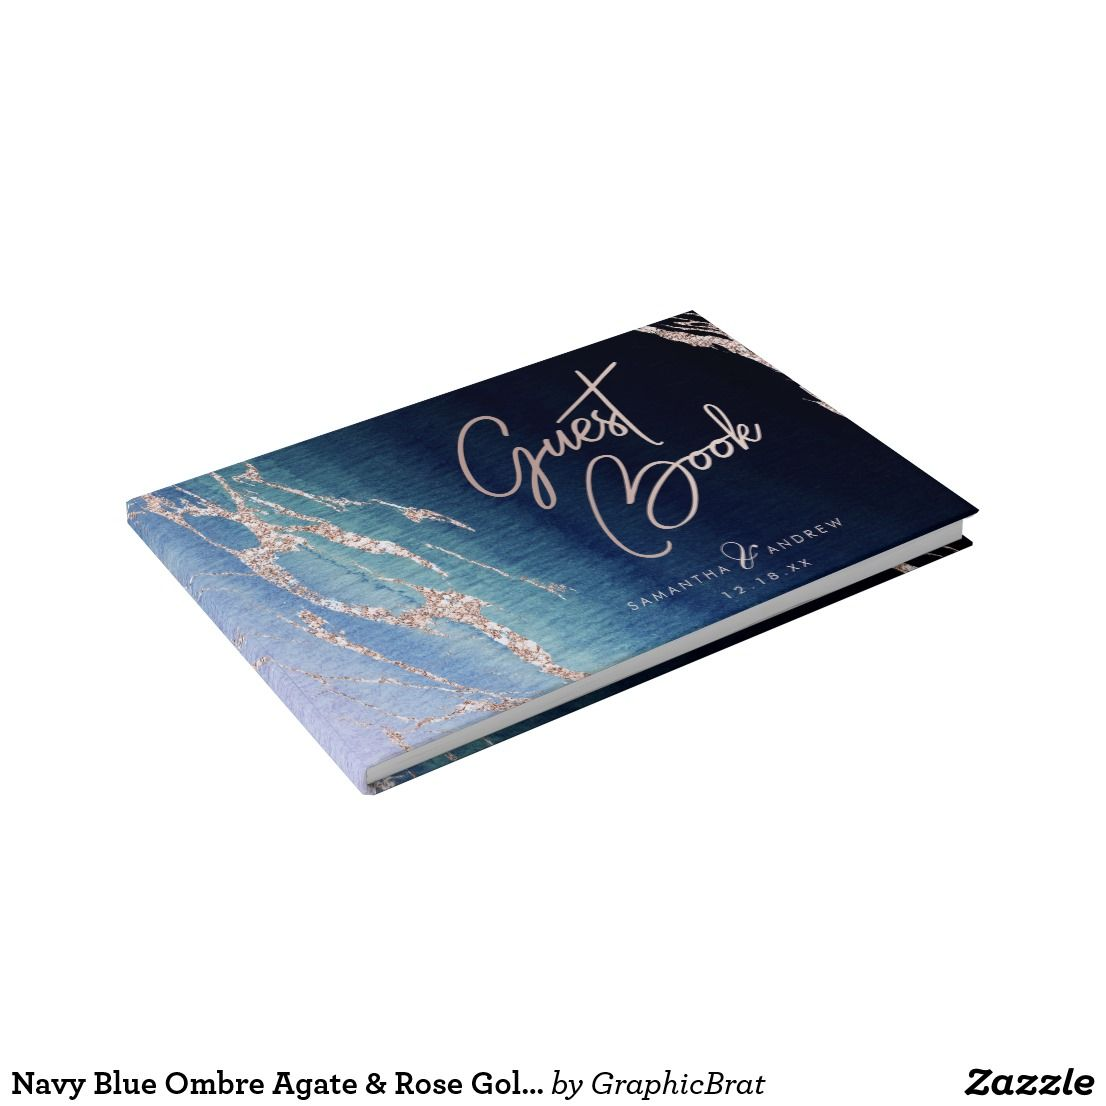 Navy Blue Ombre Agate & Rose Gold Wedding Monogram Guest Book ...